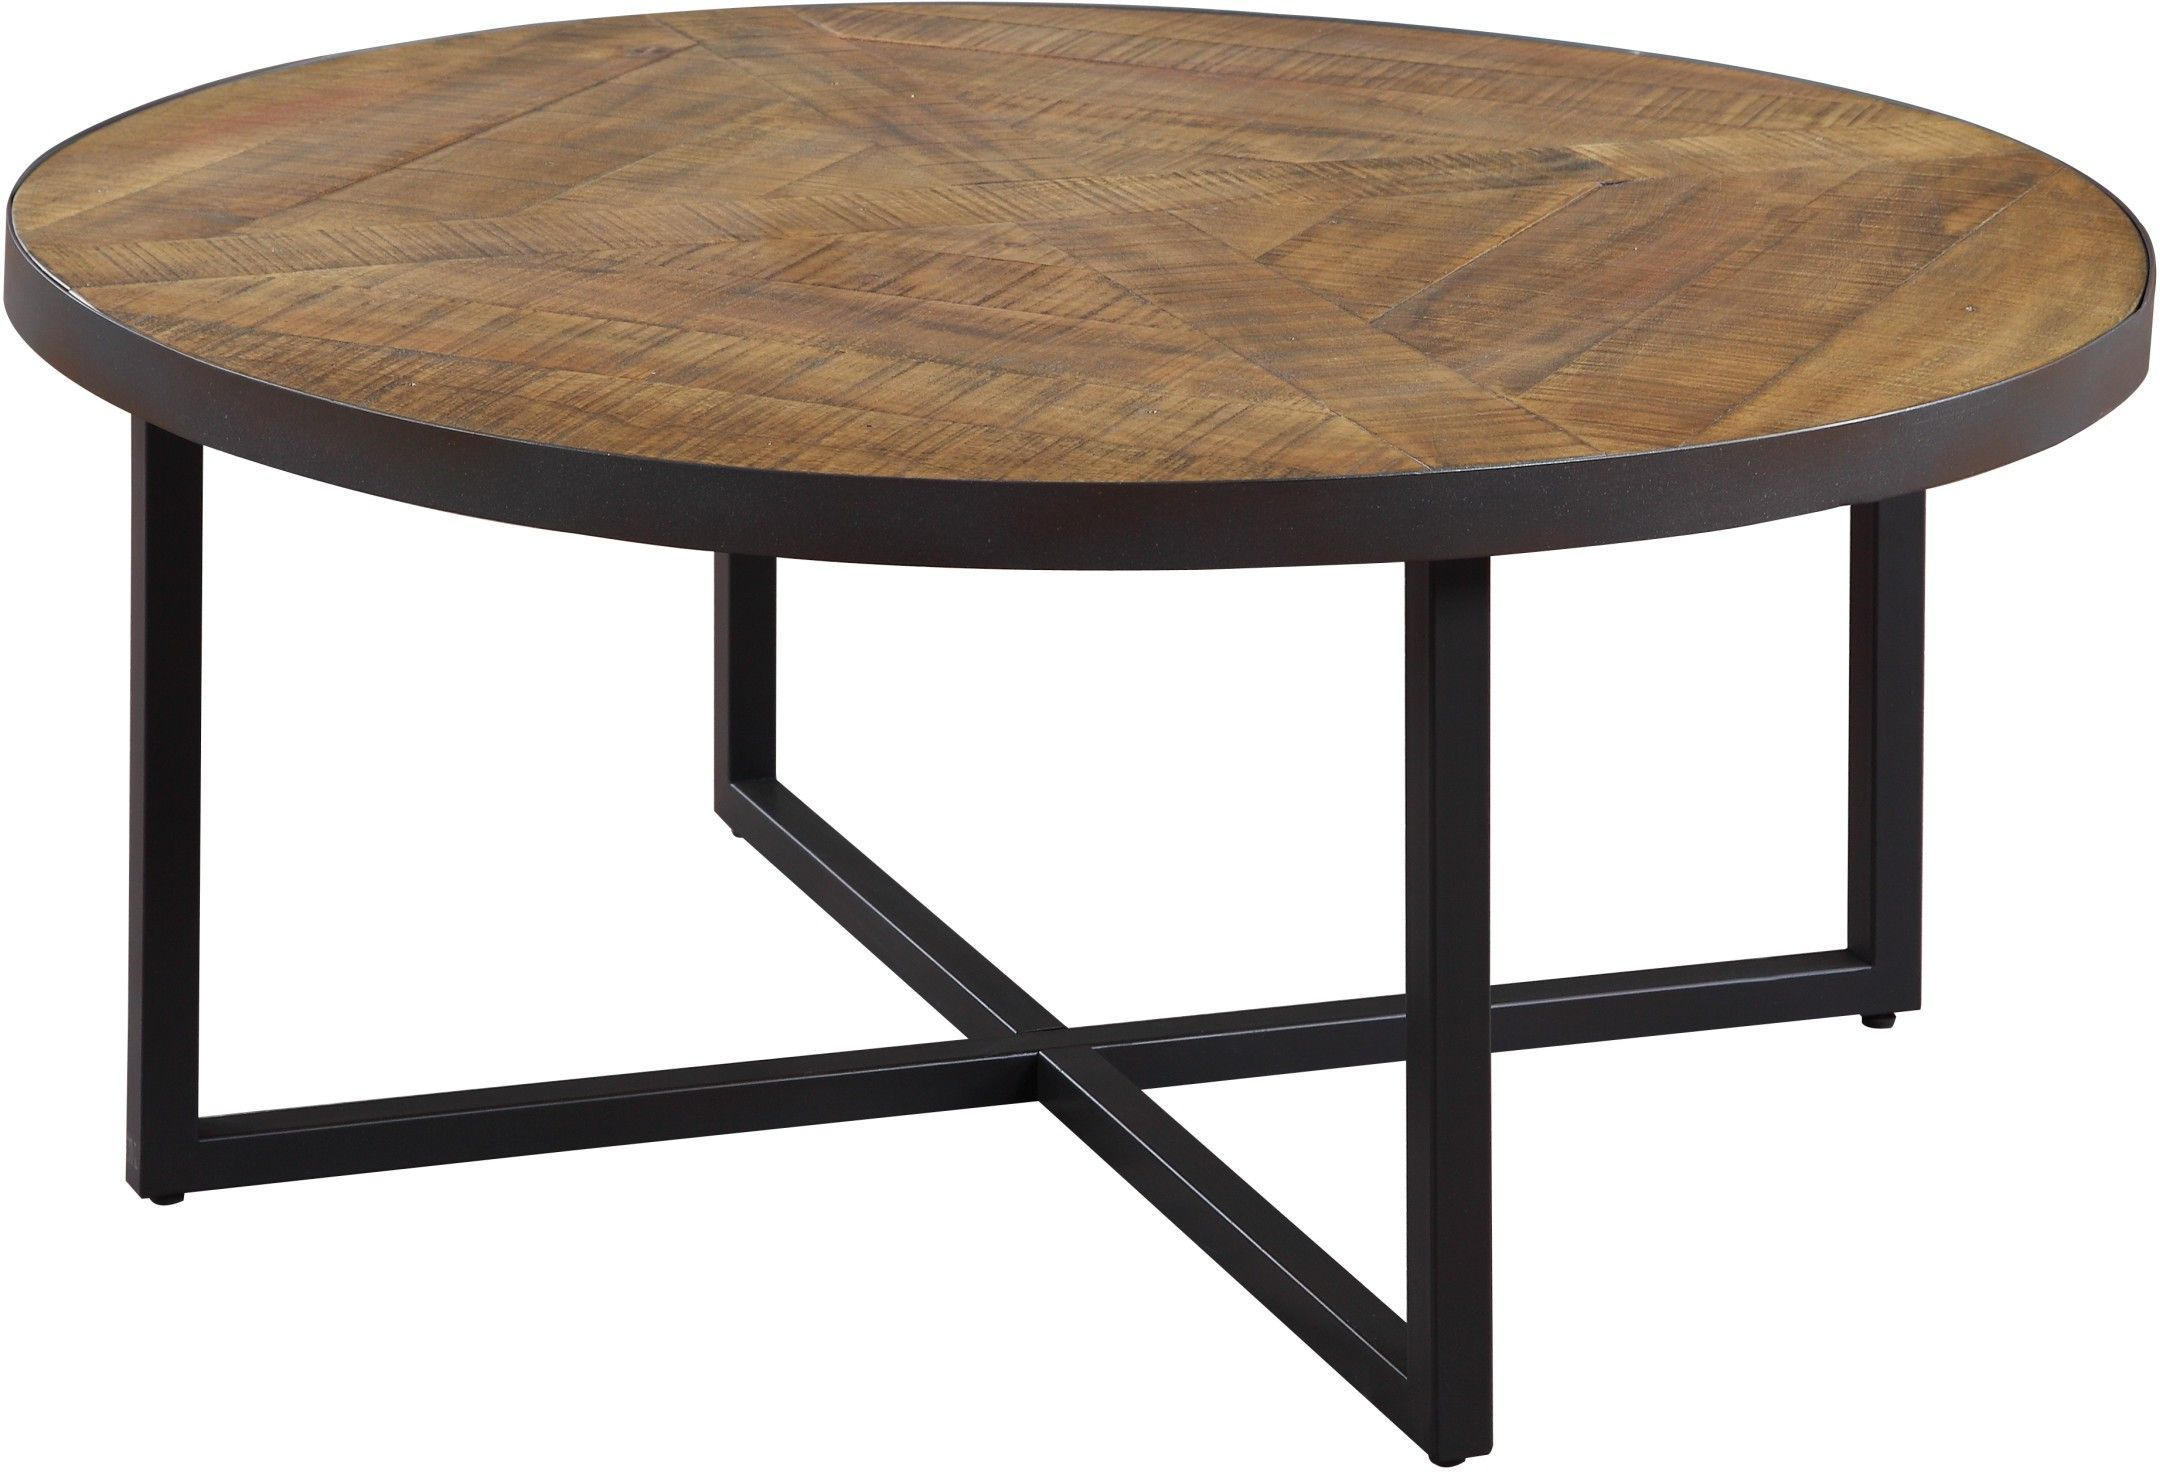 Emerald Home Furnishings Denton Cocktail Table Antique Pine 36 In Pine Coffee Table Round Wood Coffee Table Round Wooden Coffee Table